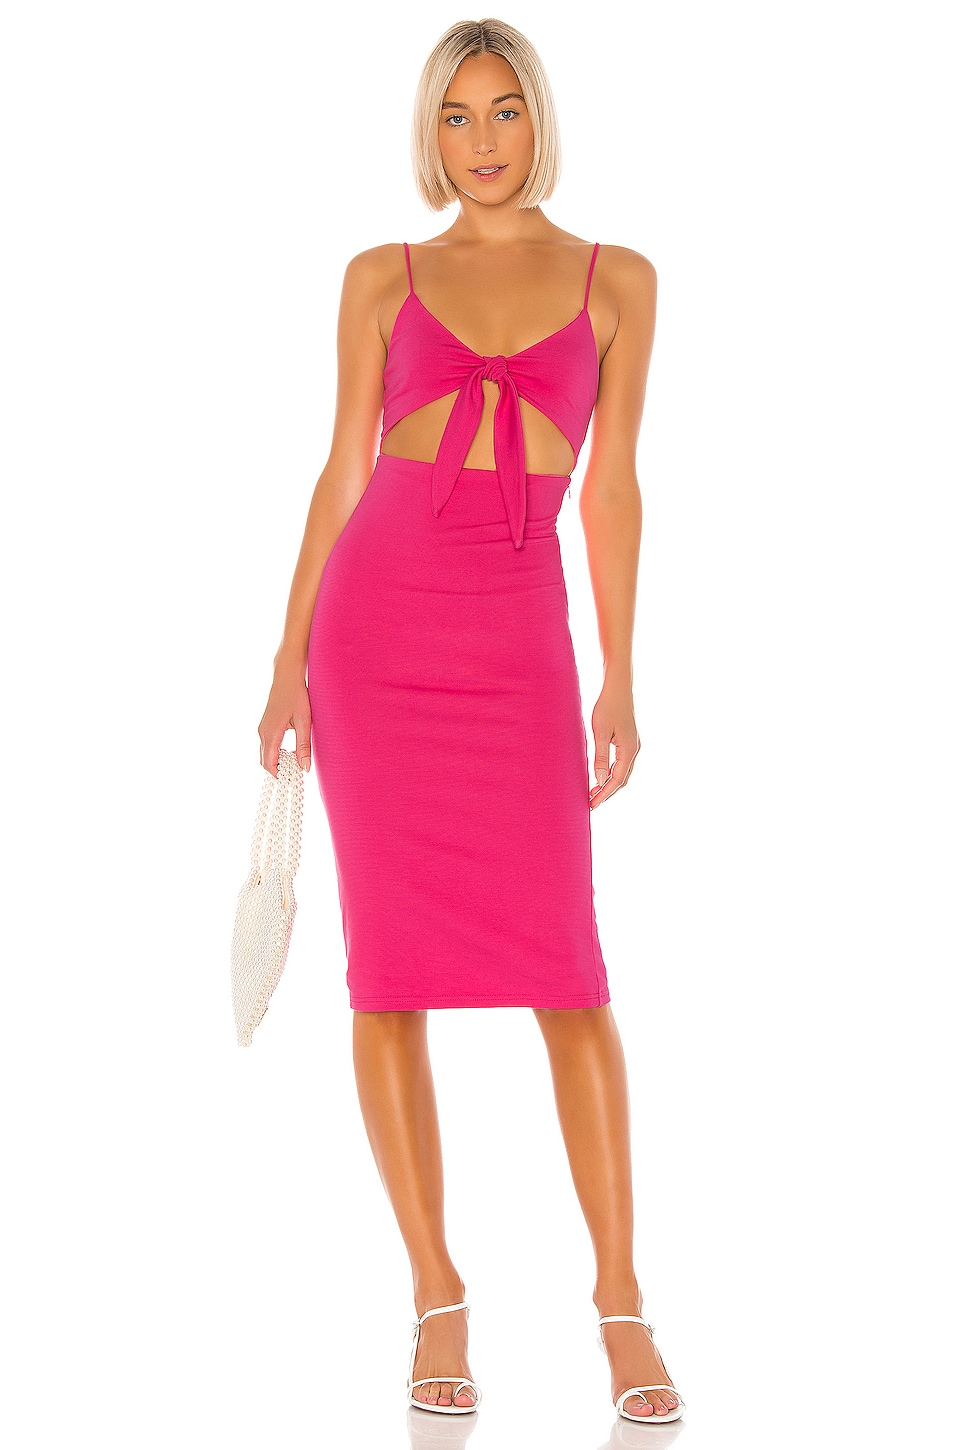 Lovers + Friends Elise Midi Dress in Candy Pink